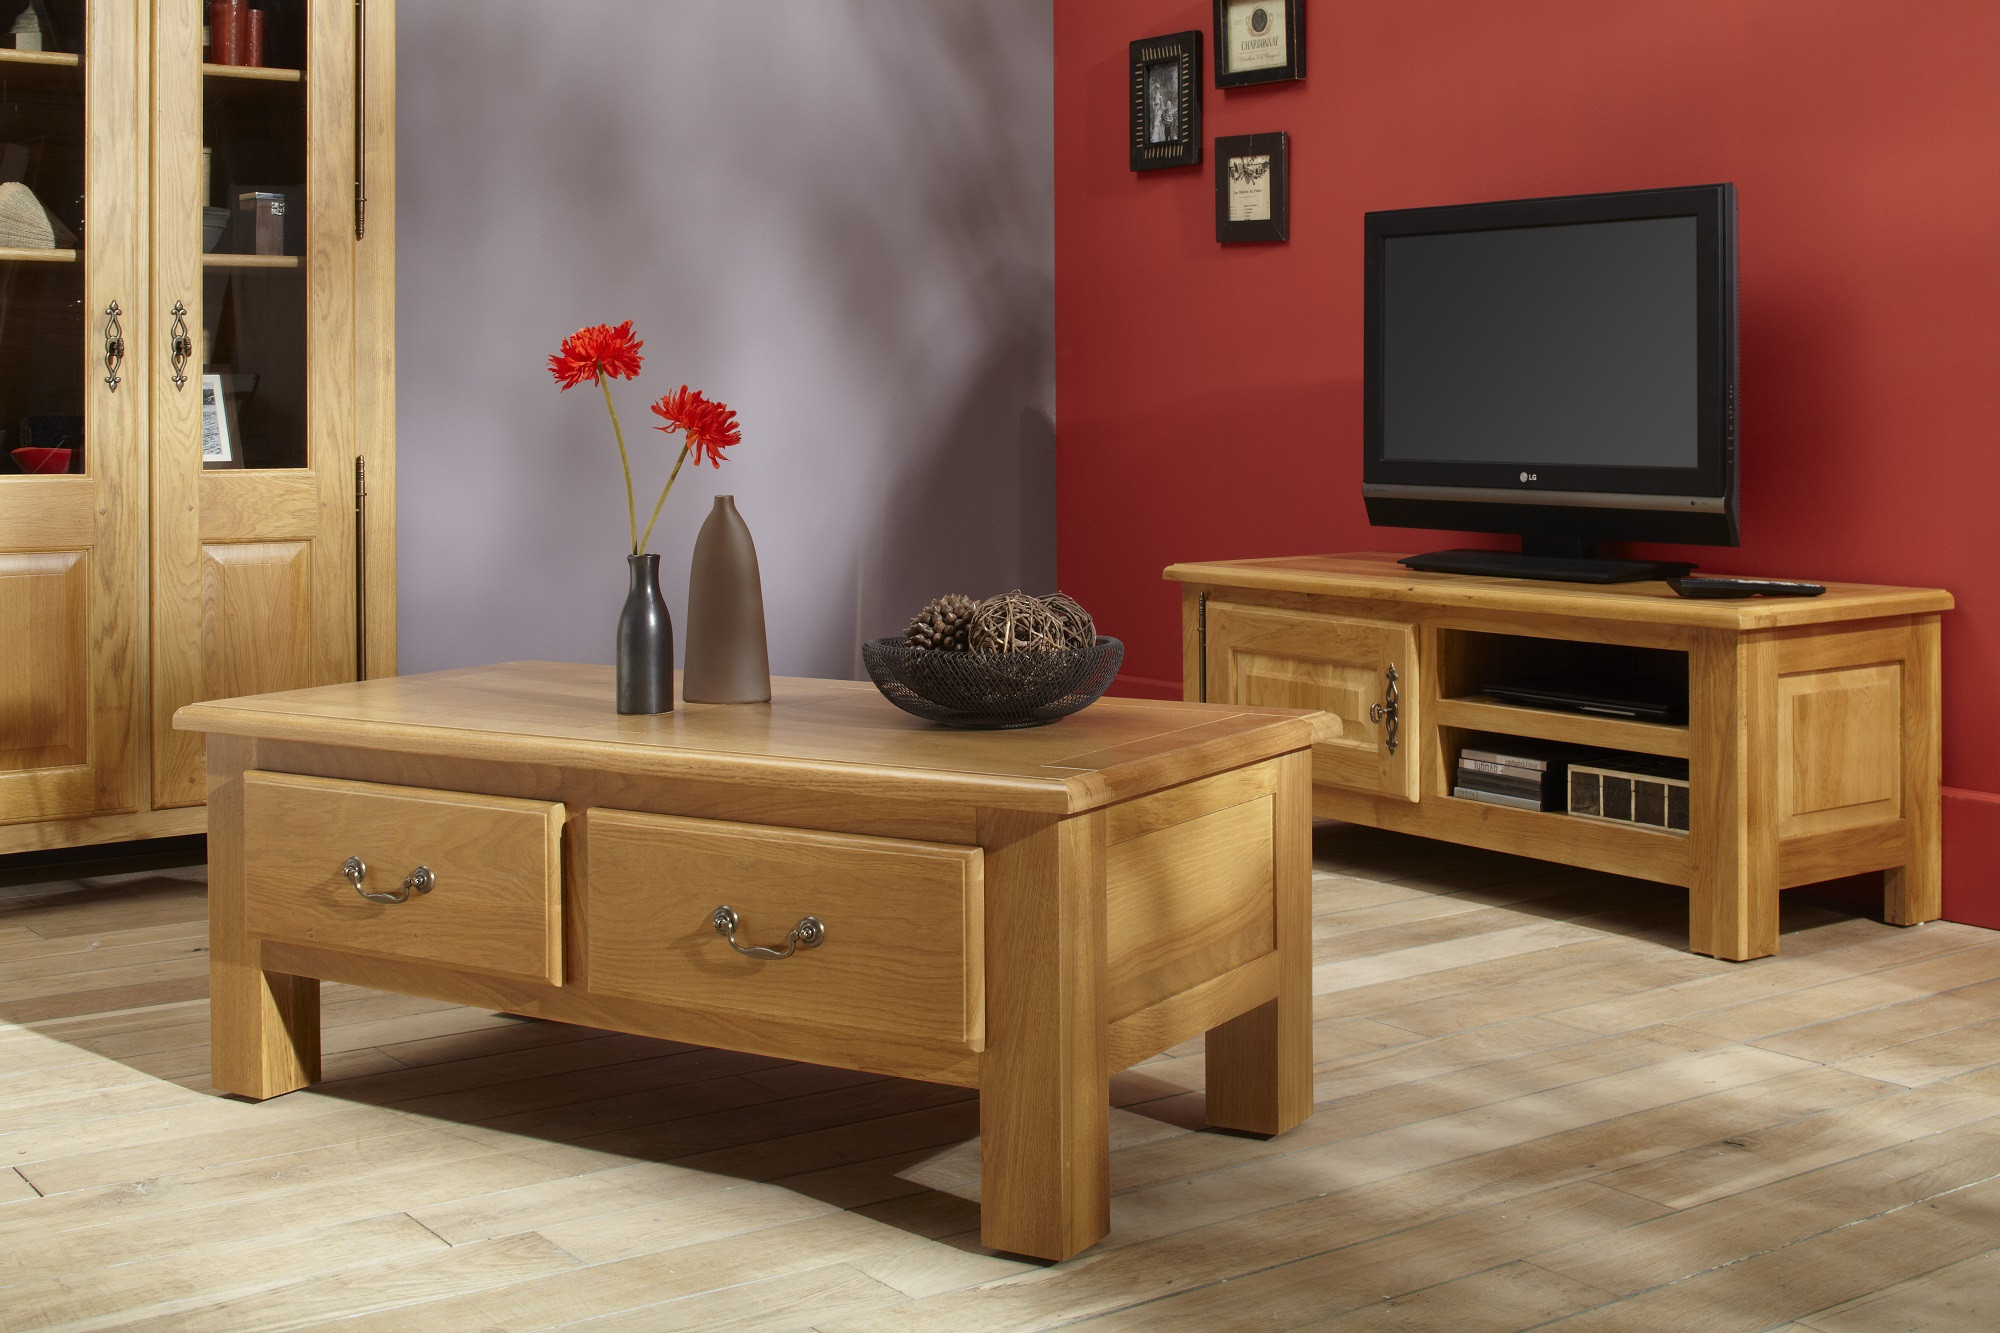 meuble tv mansart en bois ch ne massif finition ch ne. Black Bedroom Furniture Sets. Home Design Ideas